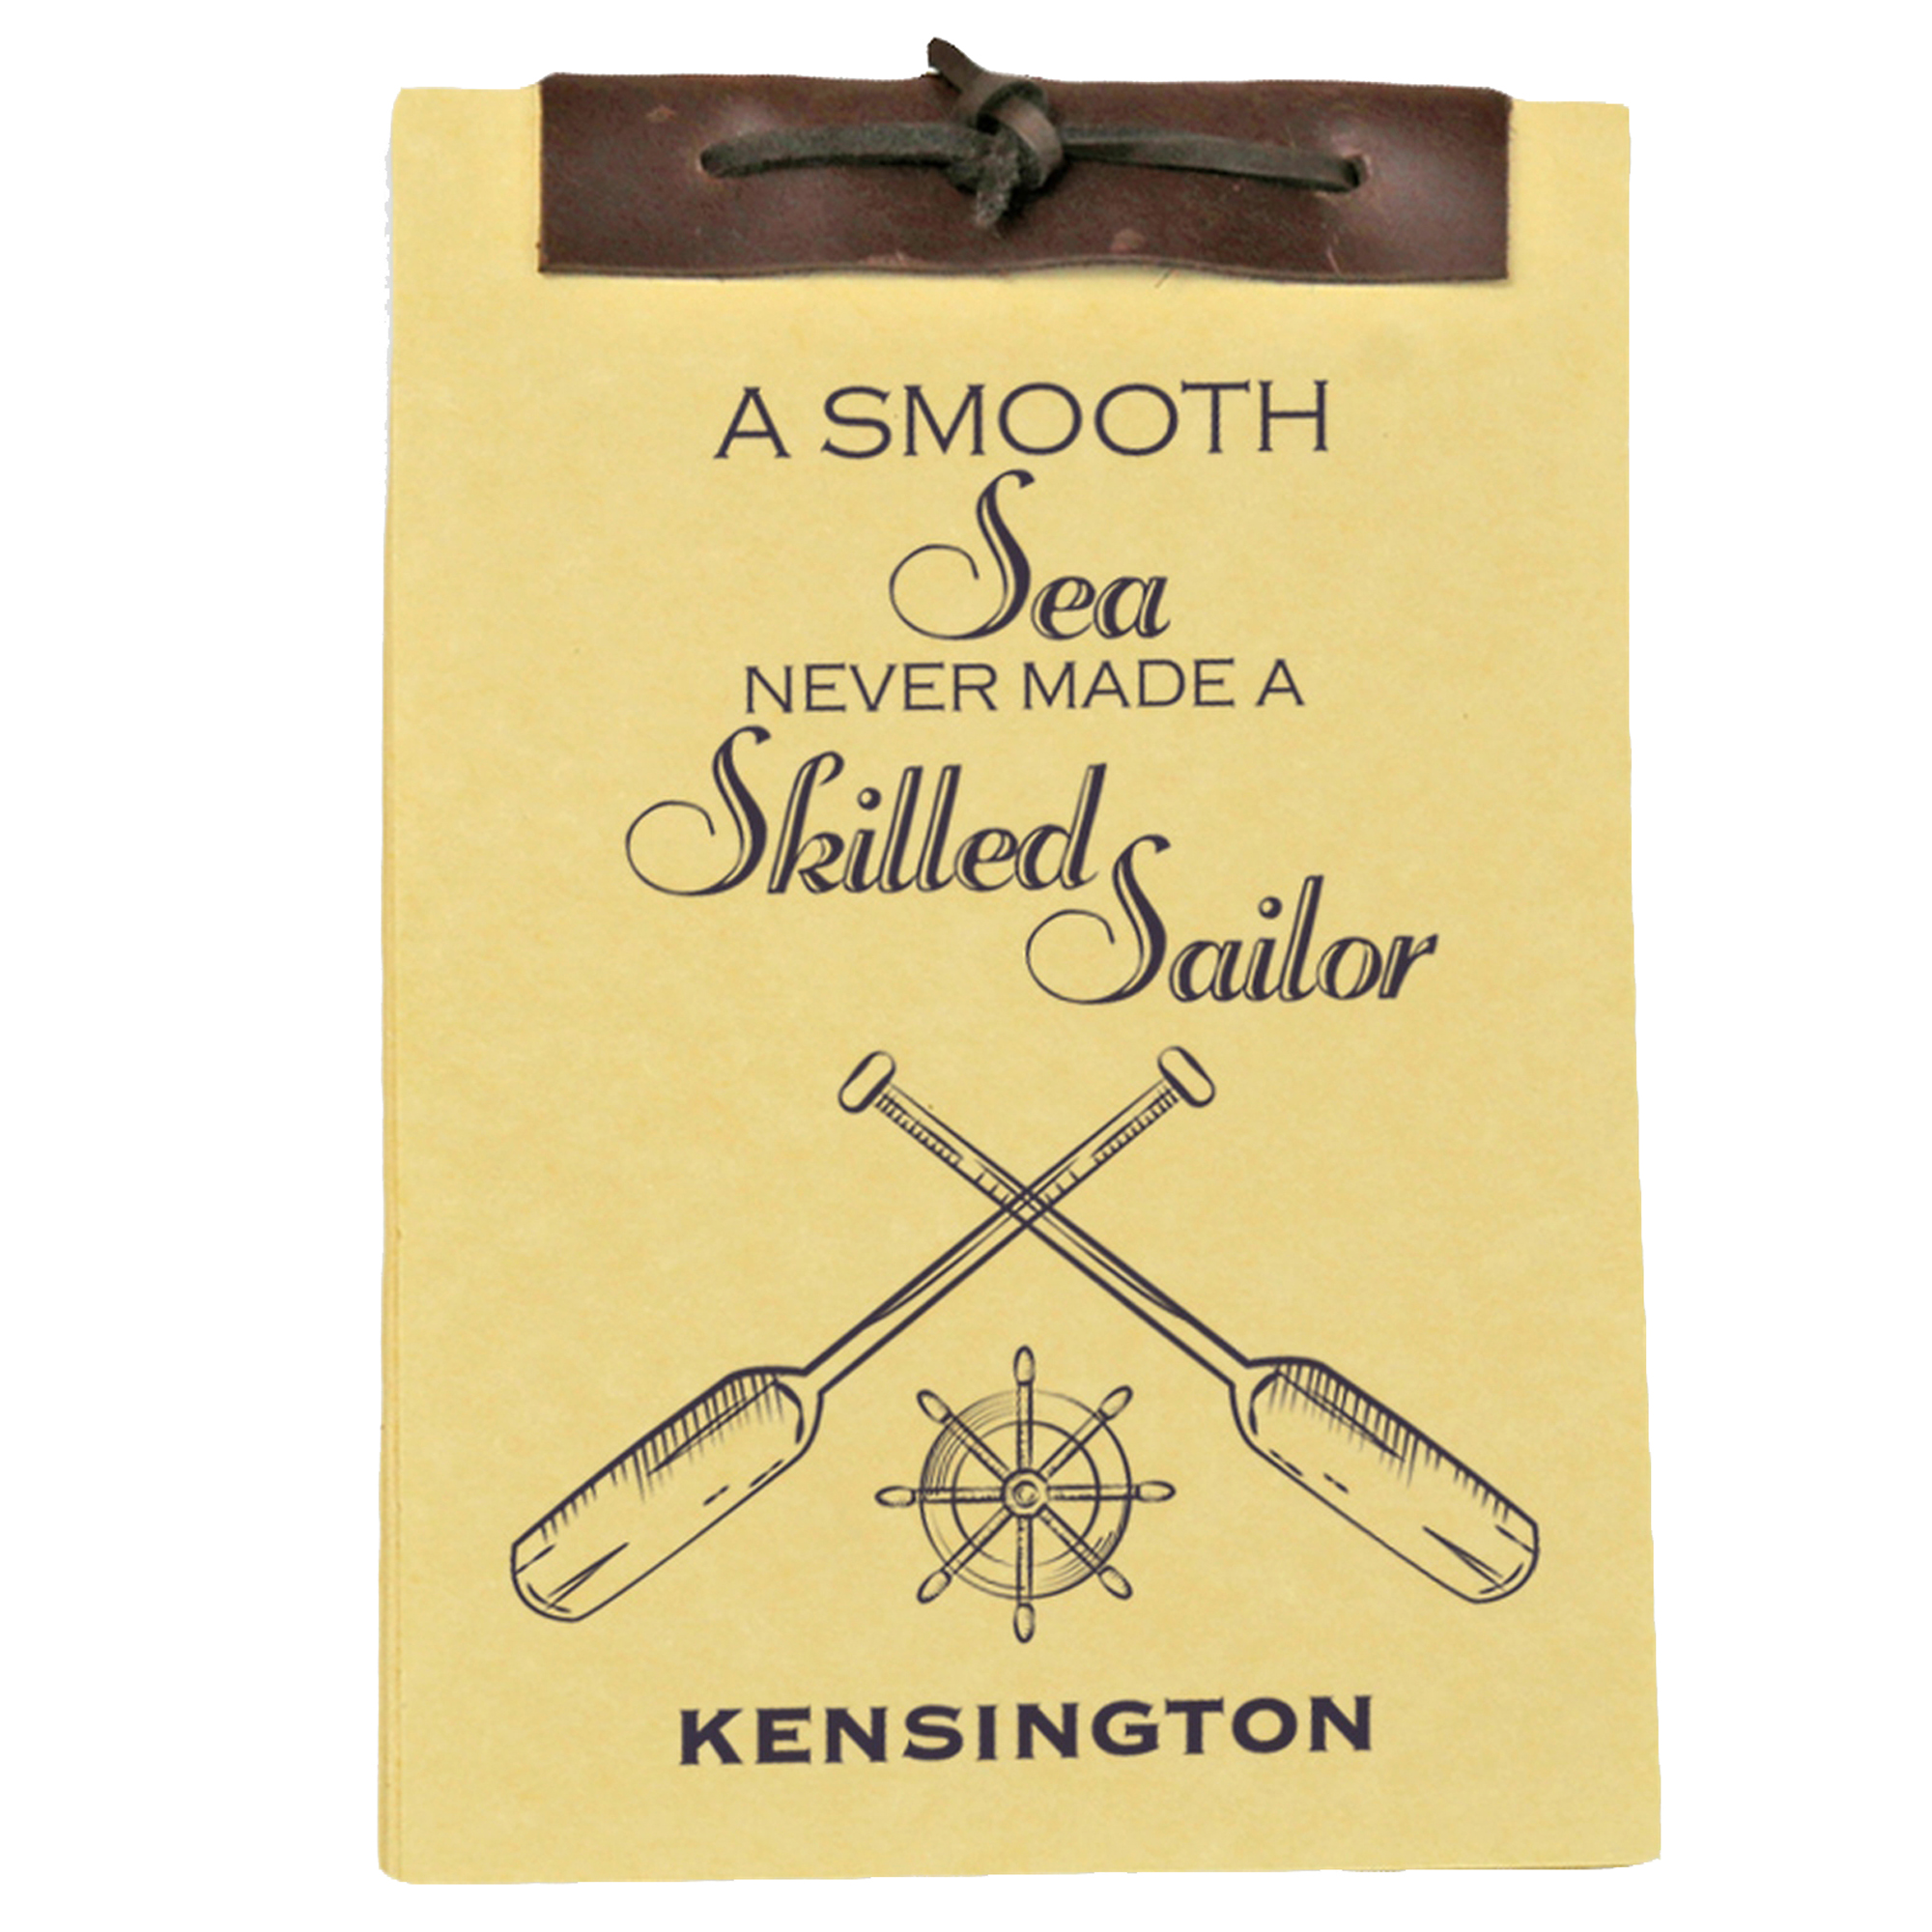 A Smooth Sea Antique Style Personalized Notebook 8.5 x 5.5 inches